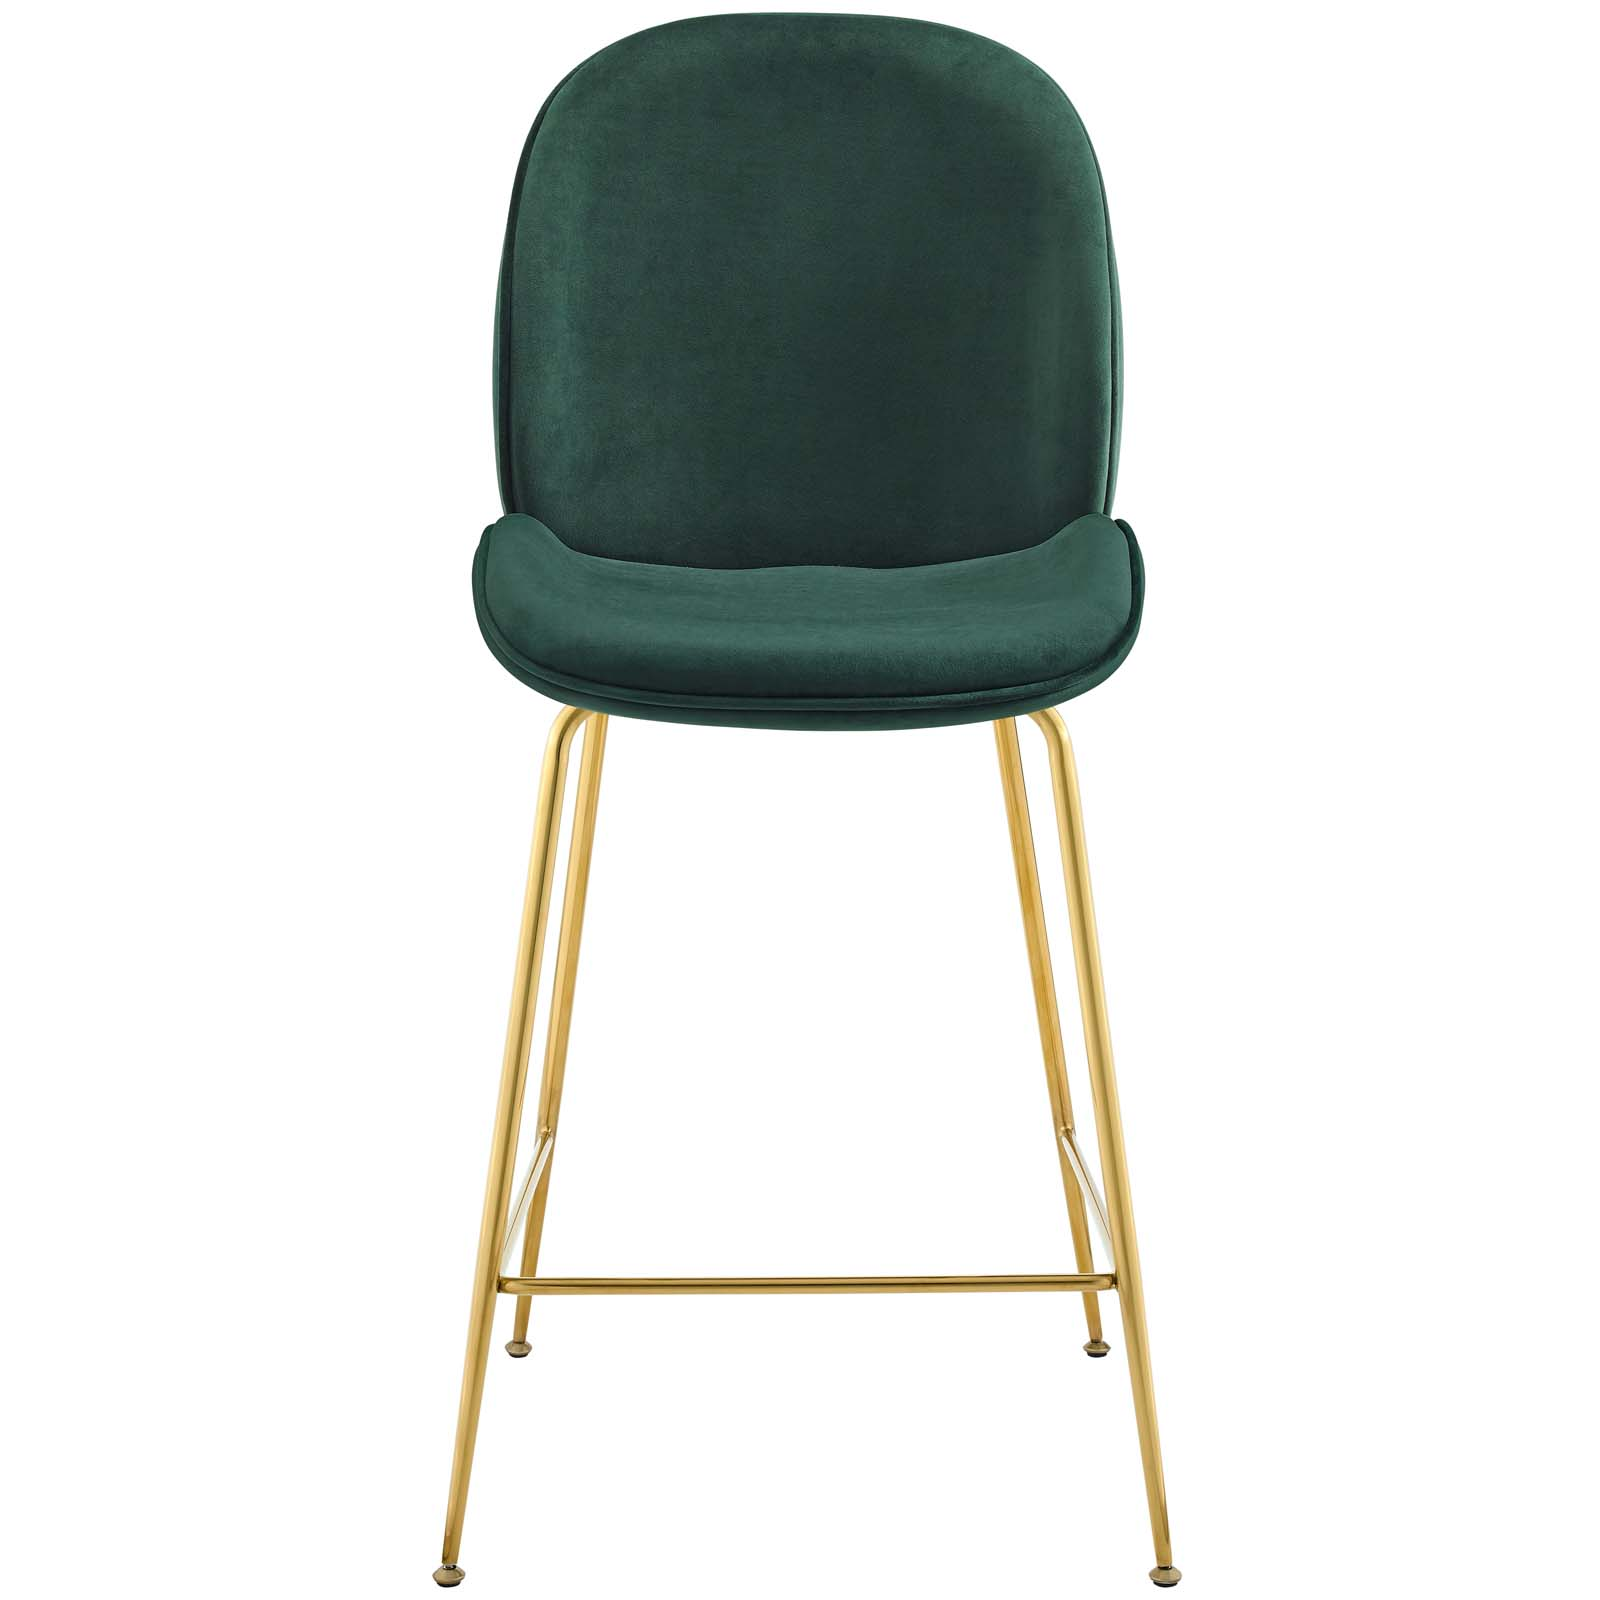 Admirable Details About Scoop Gold Stainless Steel Leg Performance Velvet Counter Stool Green Pdpeps Interior Chair Design Pdpepsorg